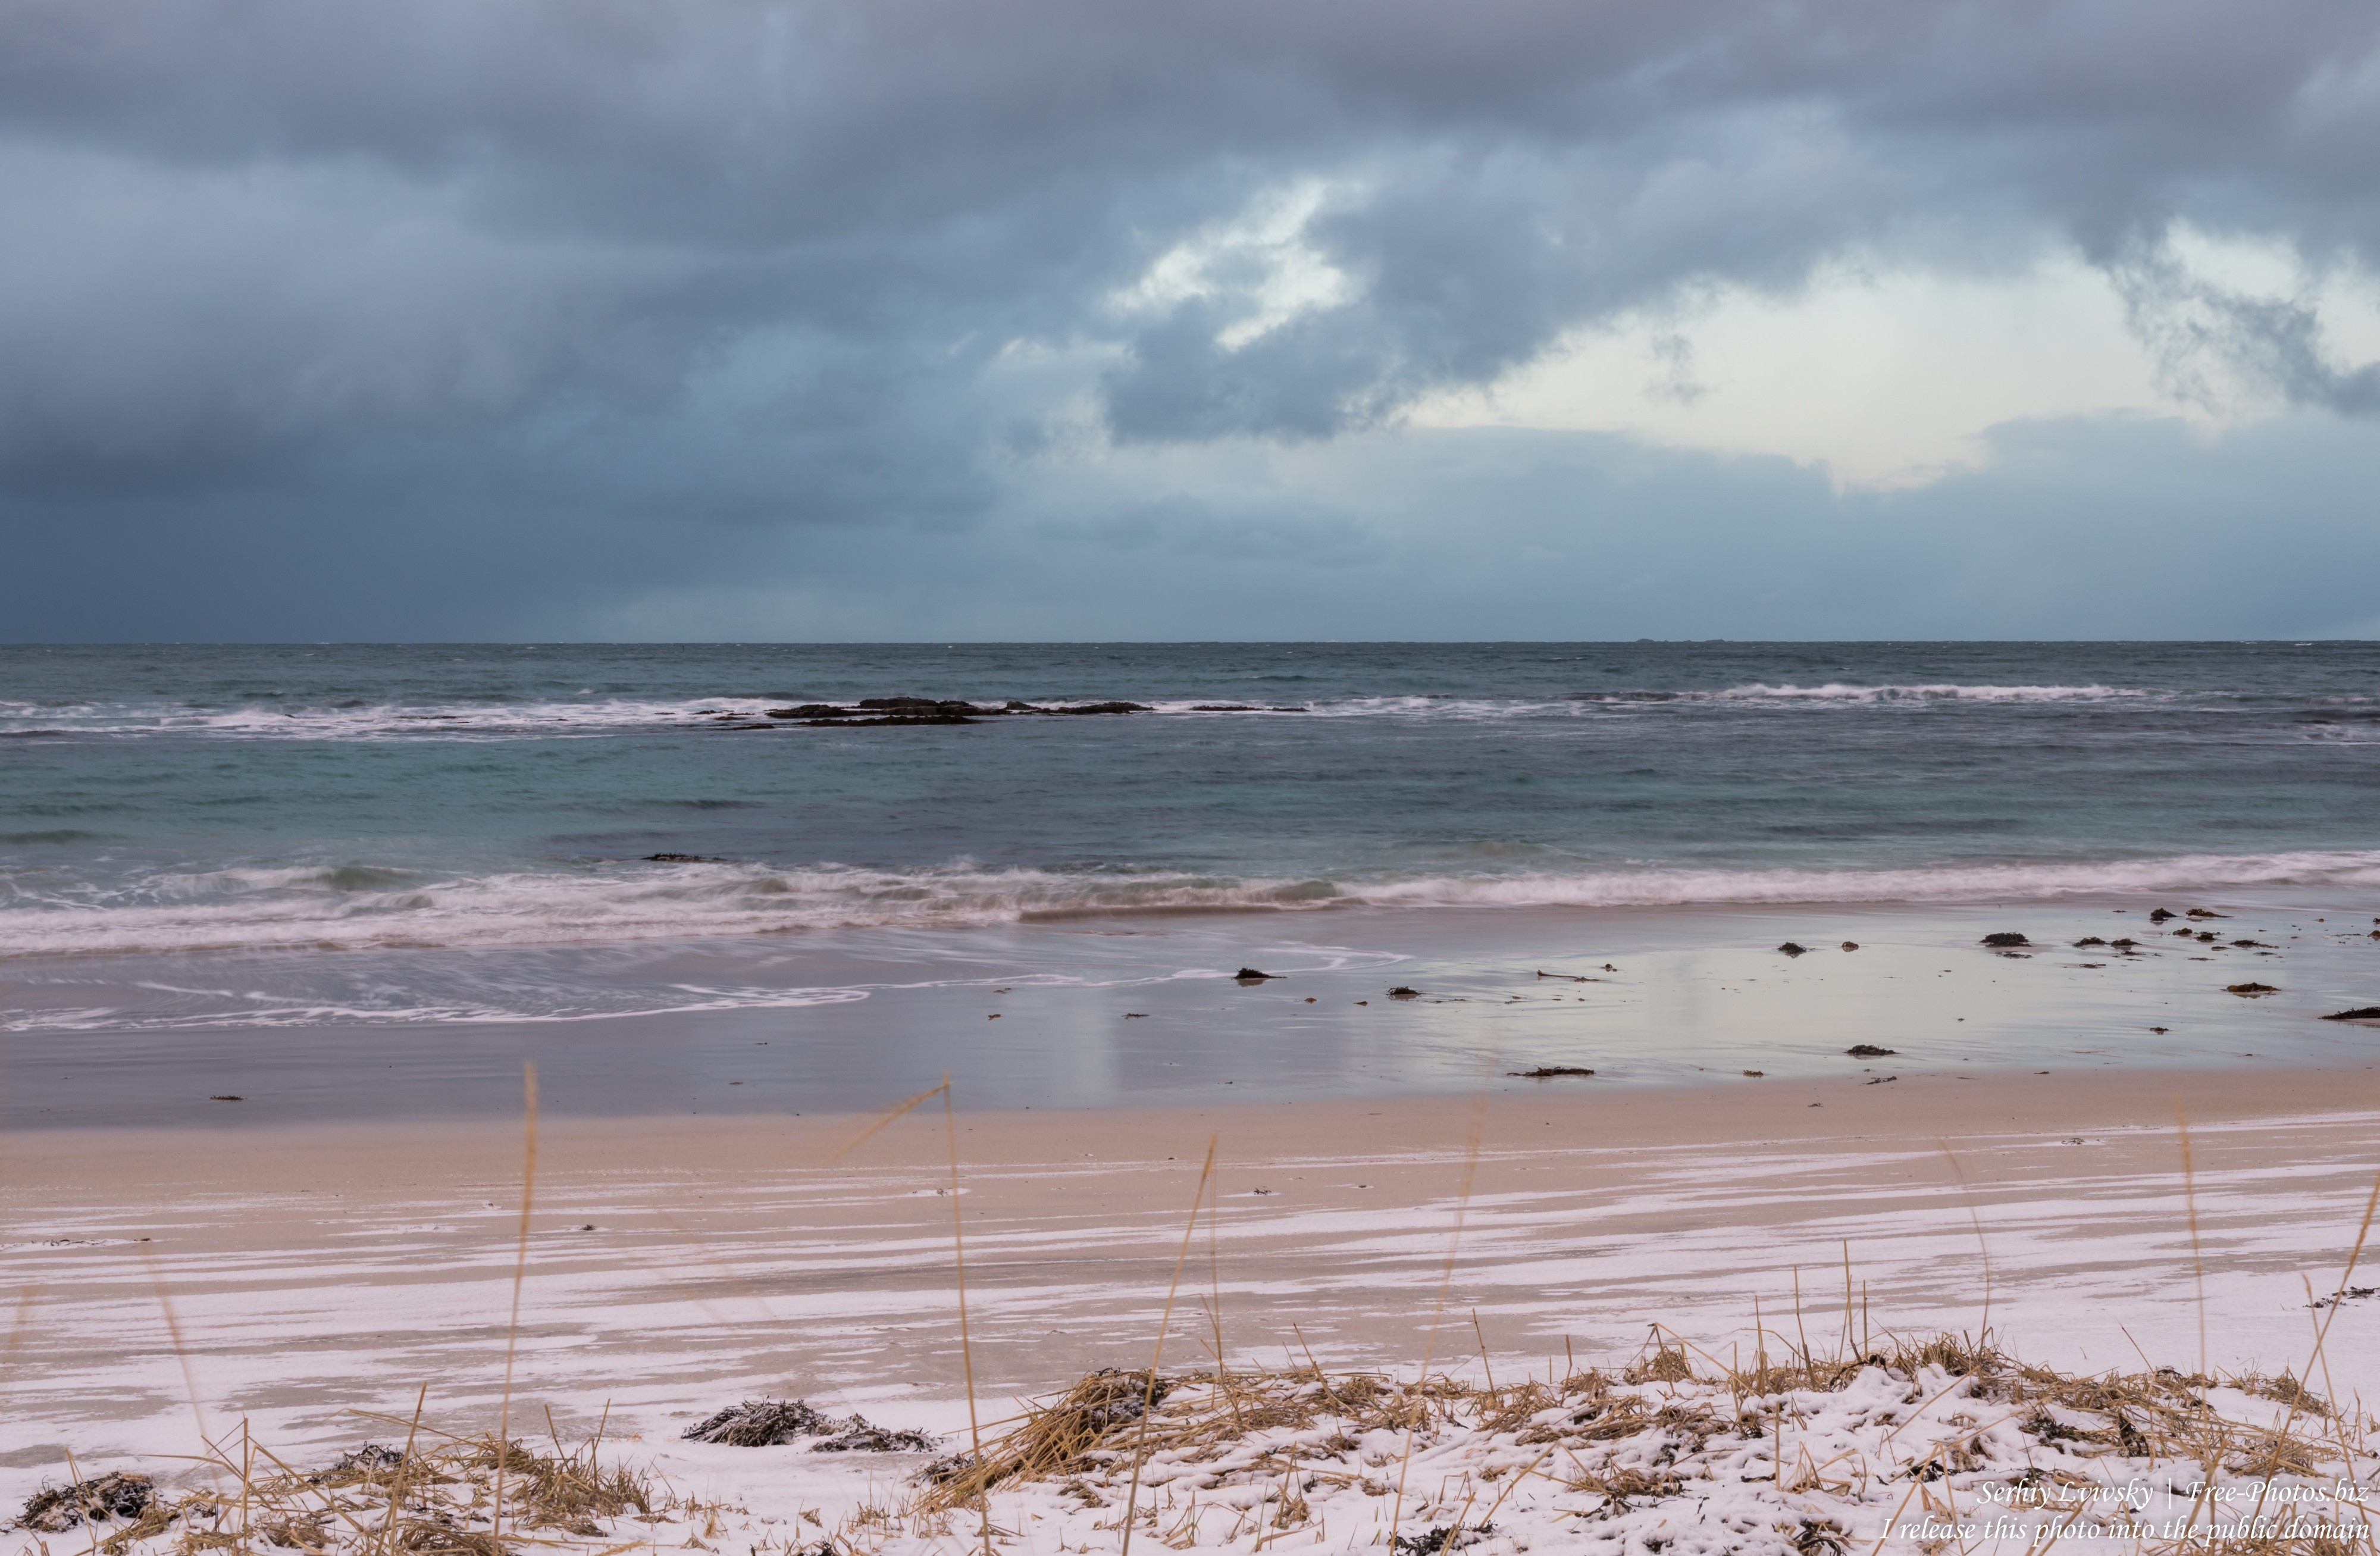 Skagsanden beach, Norway, photographed in February 2020 by Serhiy Lvivsky, picture 12